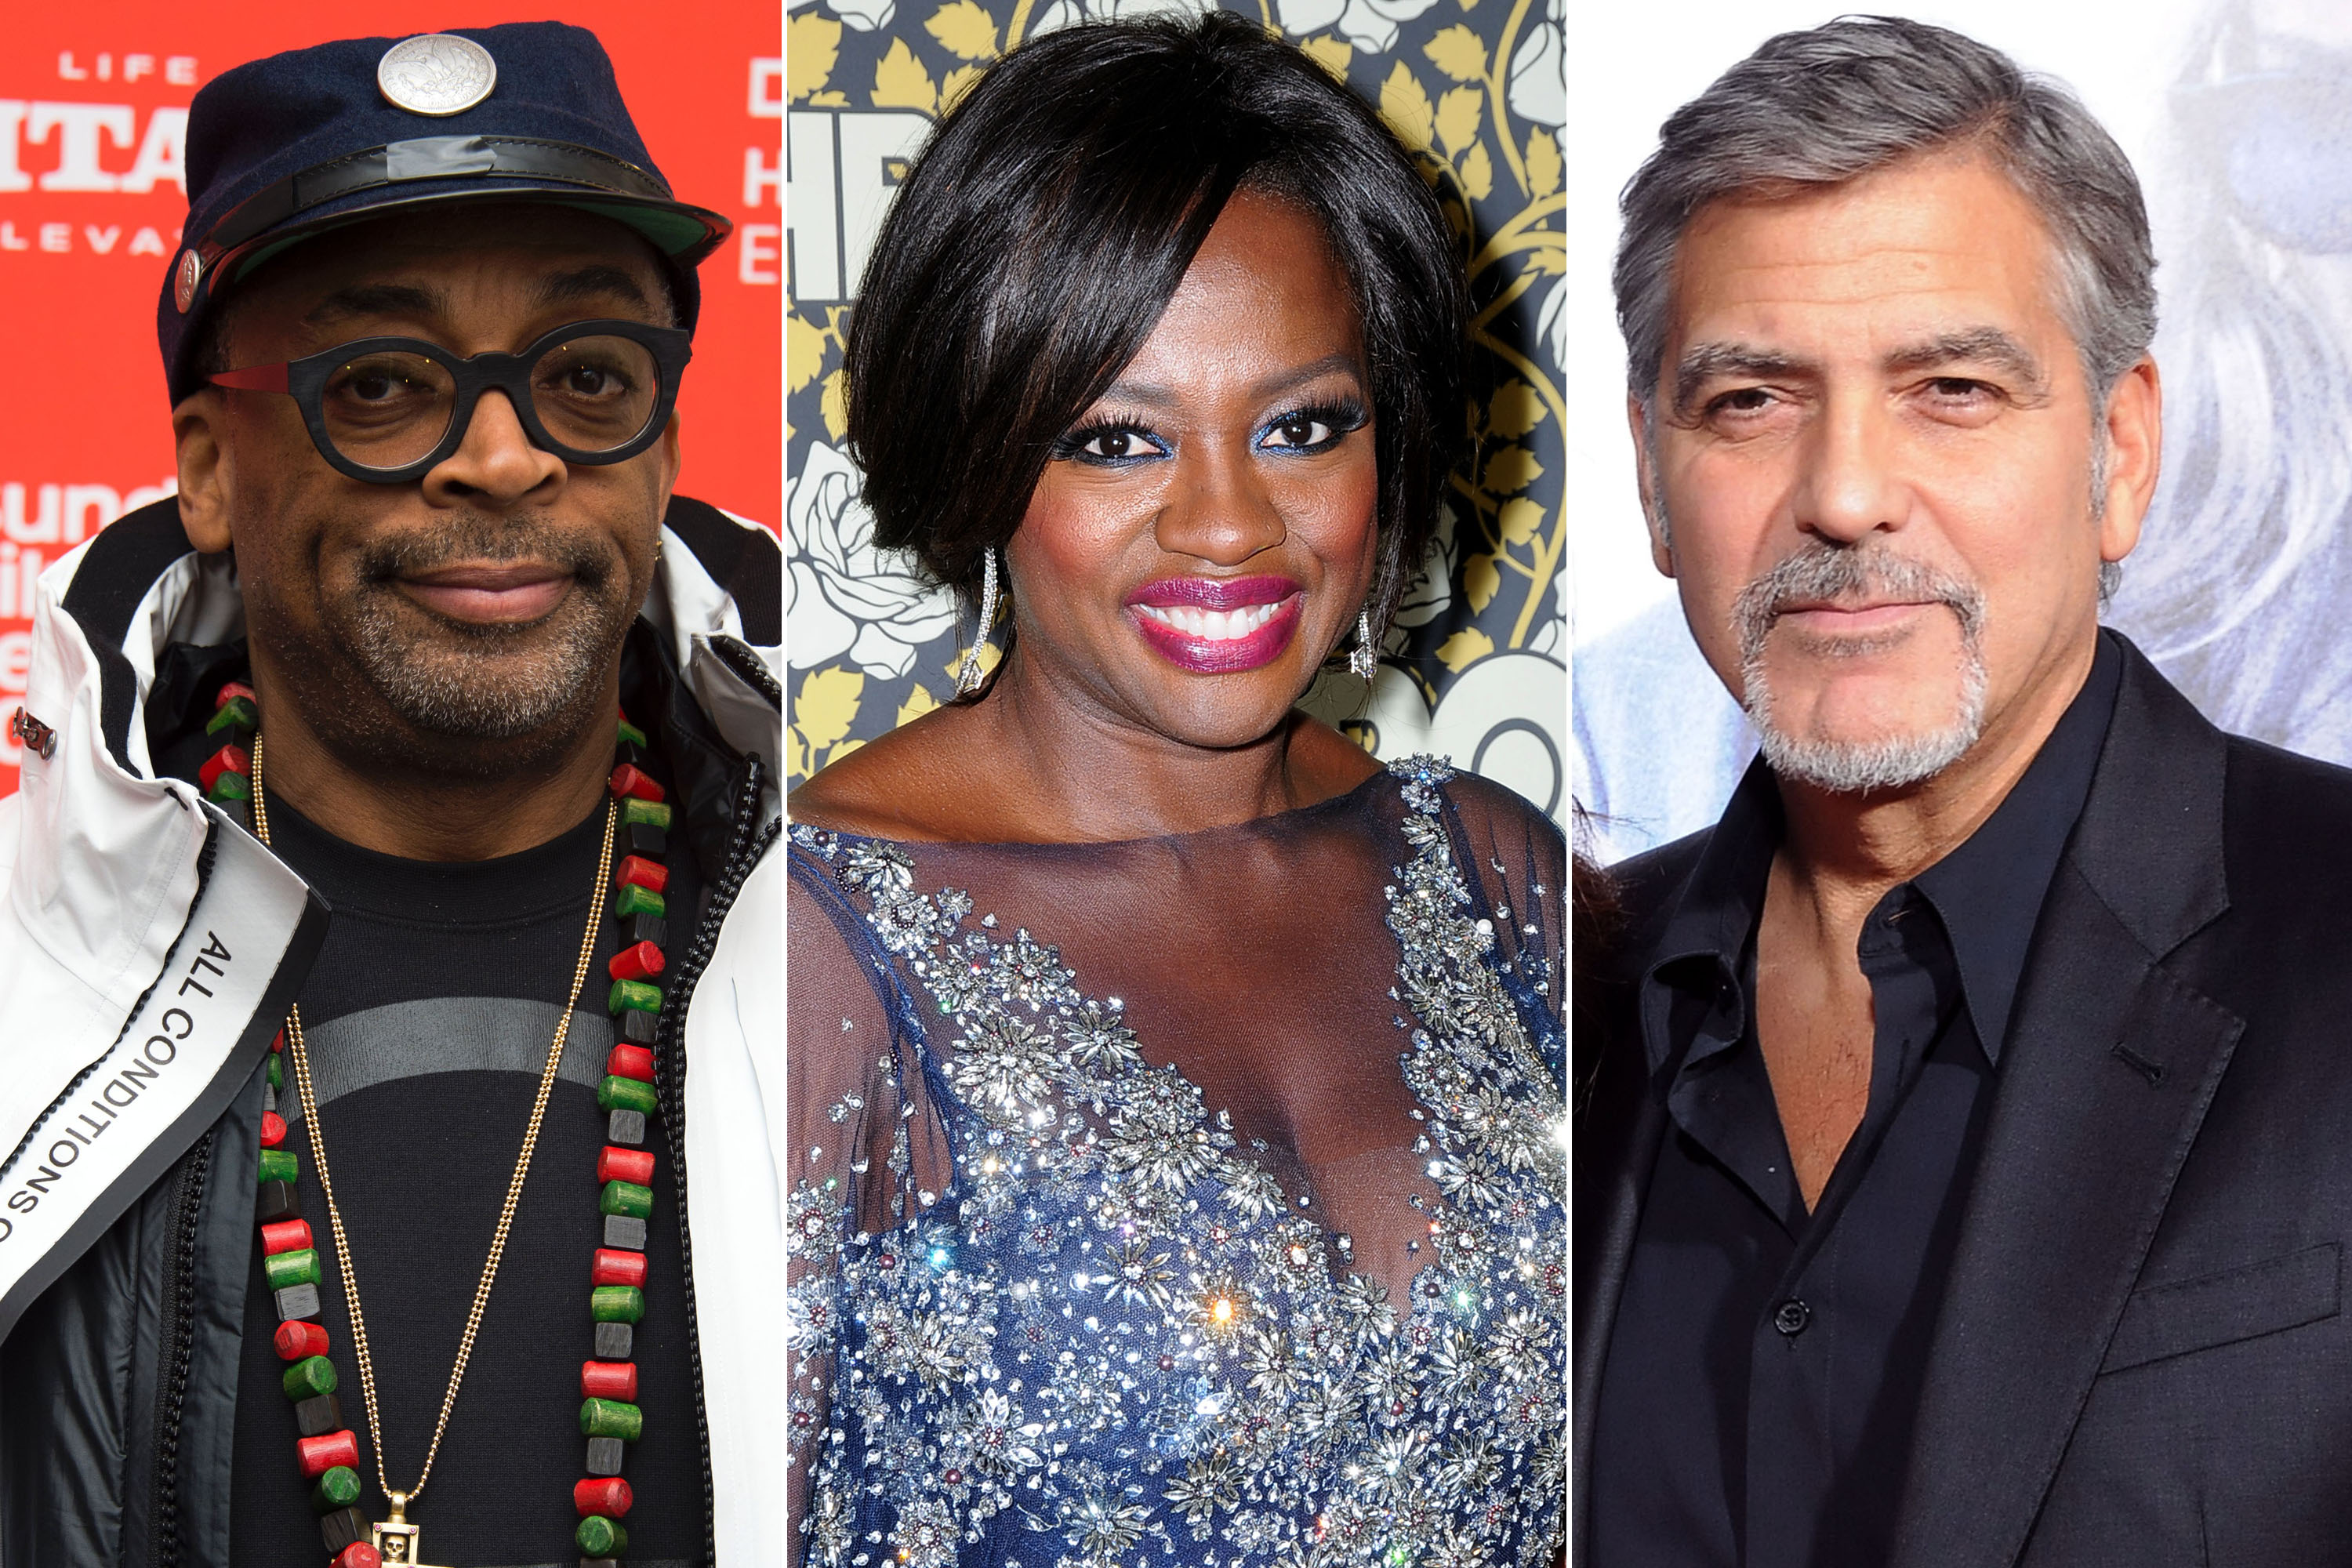 From left to right; director Spike Lee, actress Viola Davis and actor and producer George Clooney.